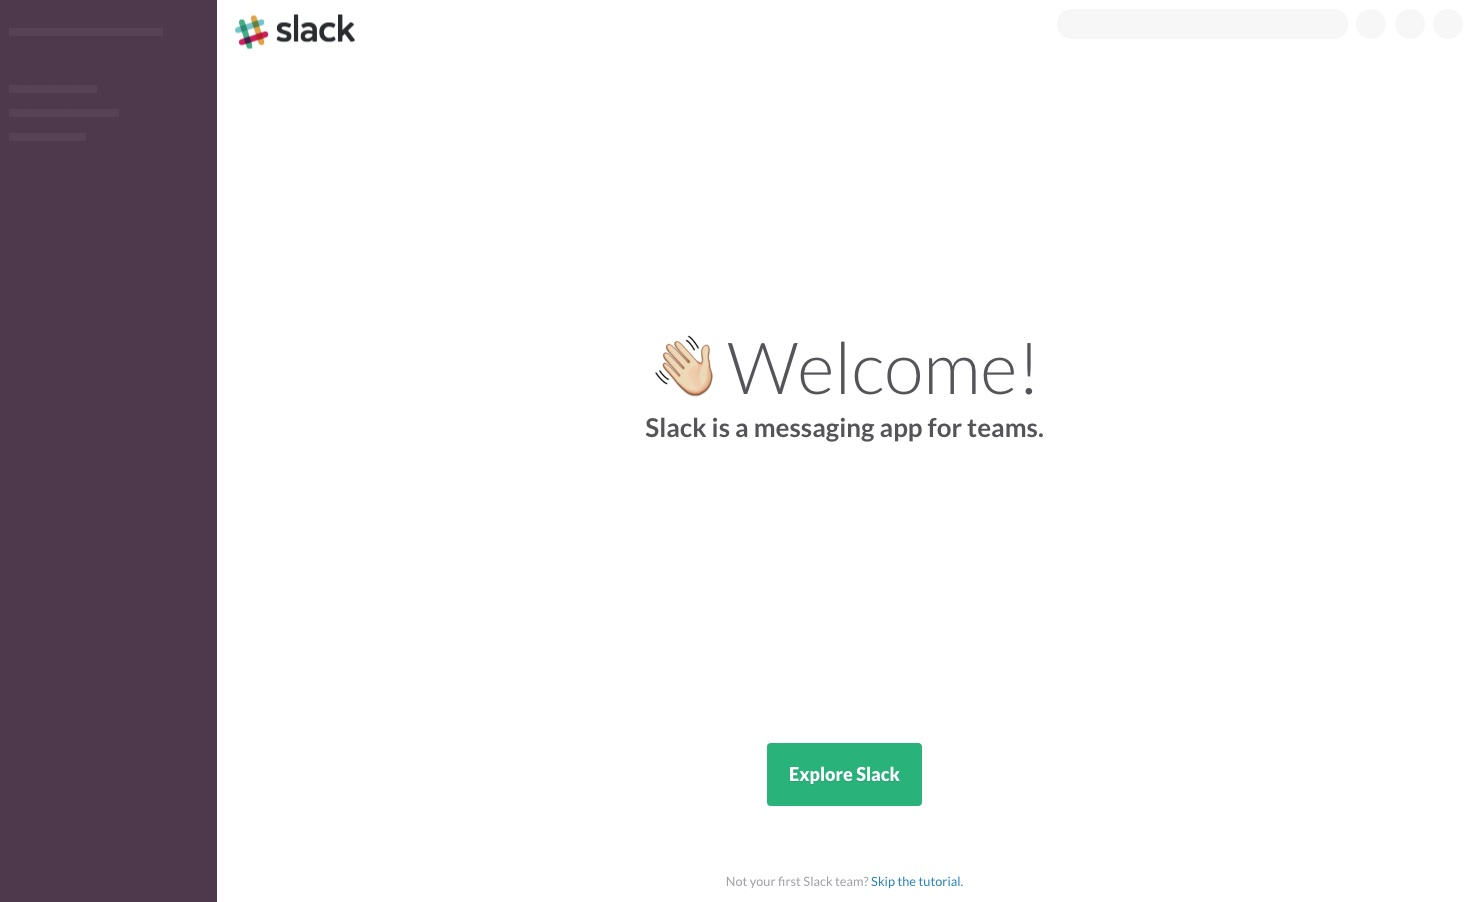 Slack's new onboarding welcome screen